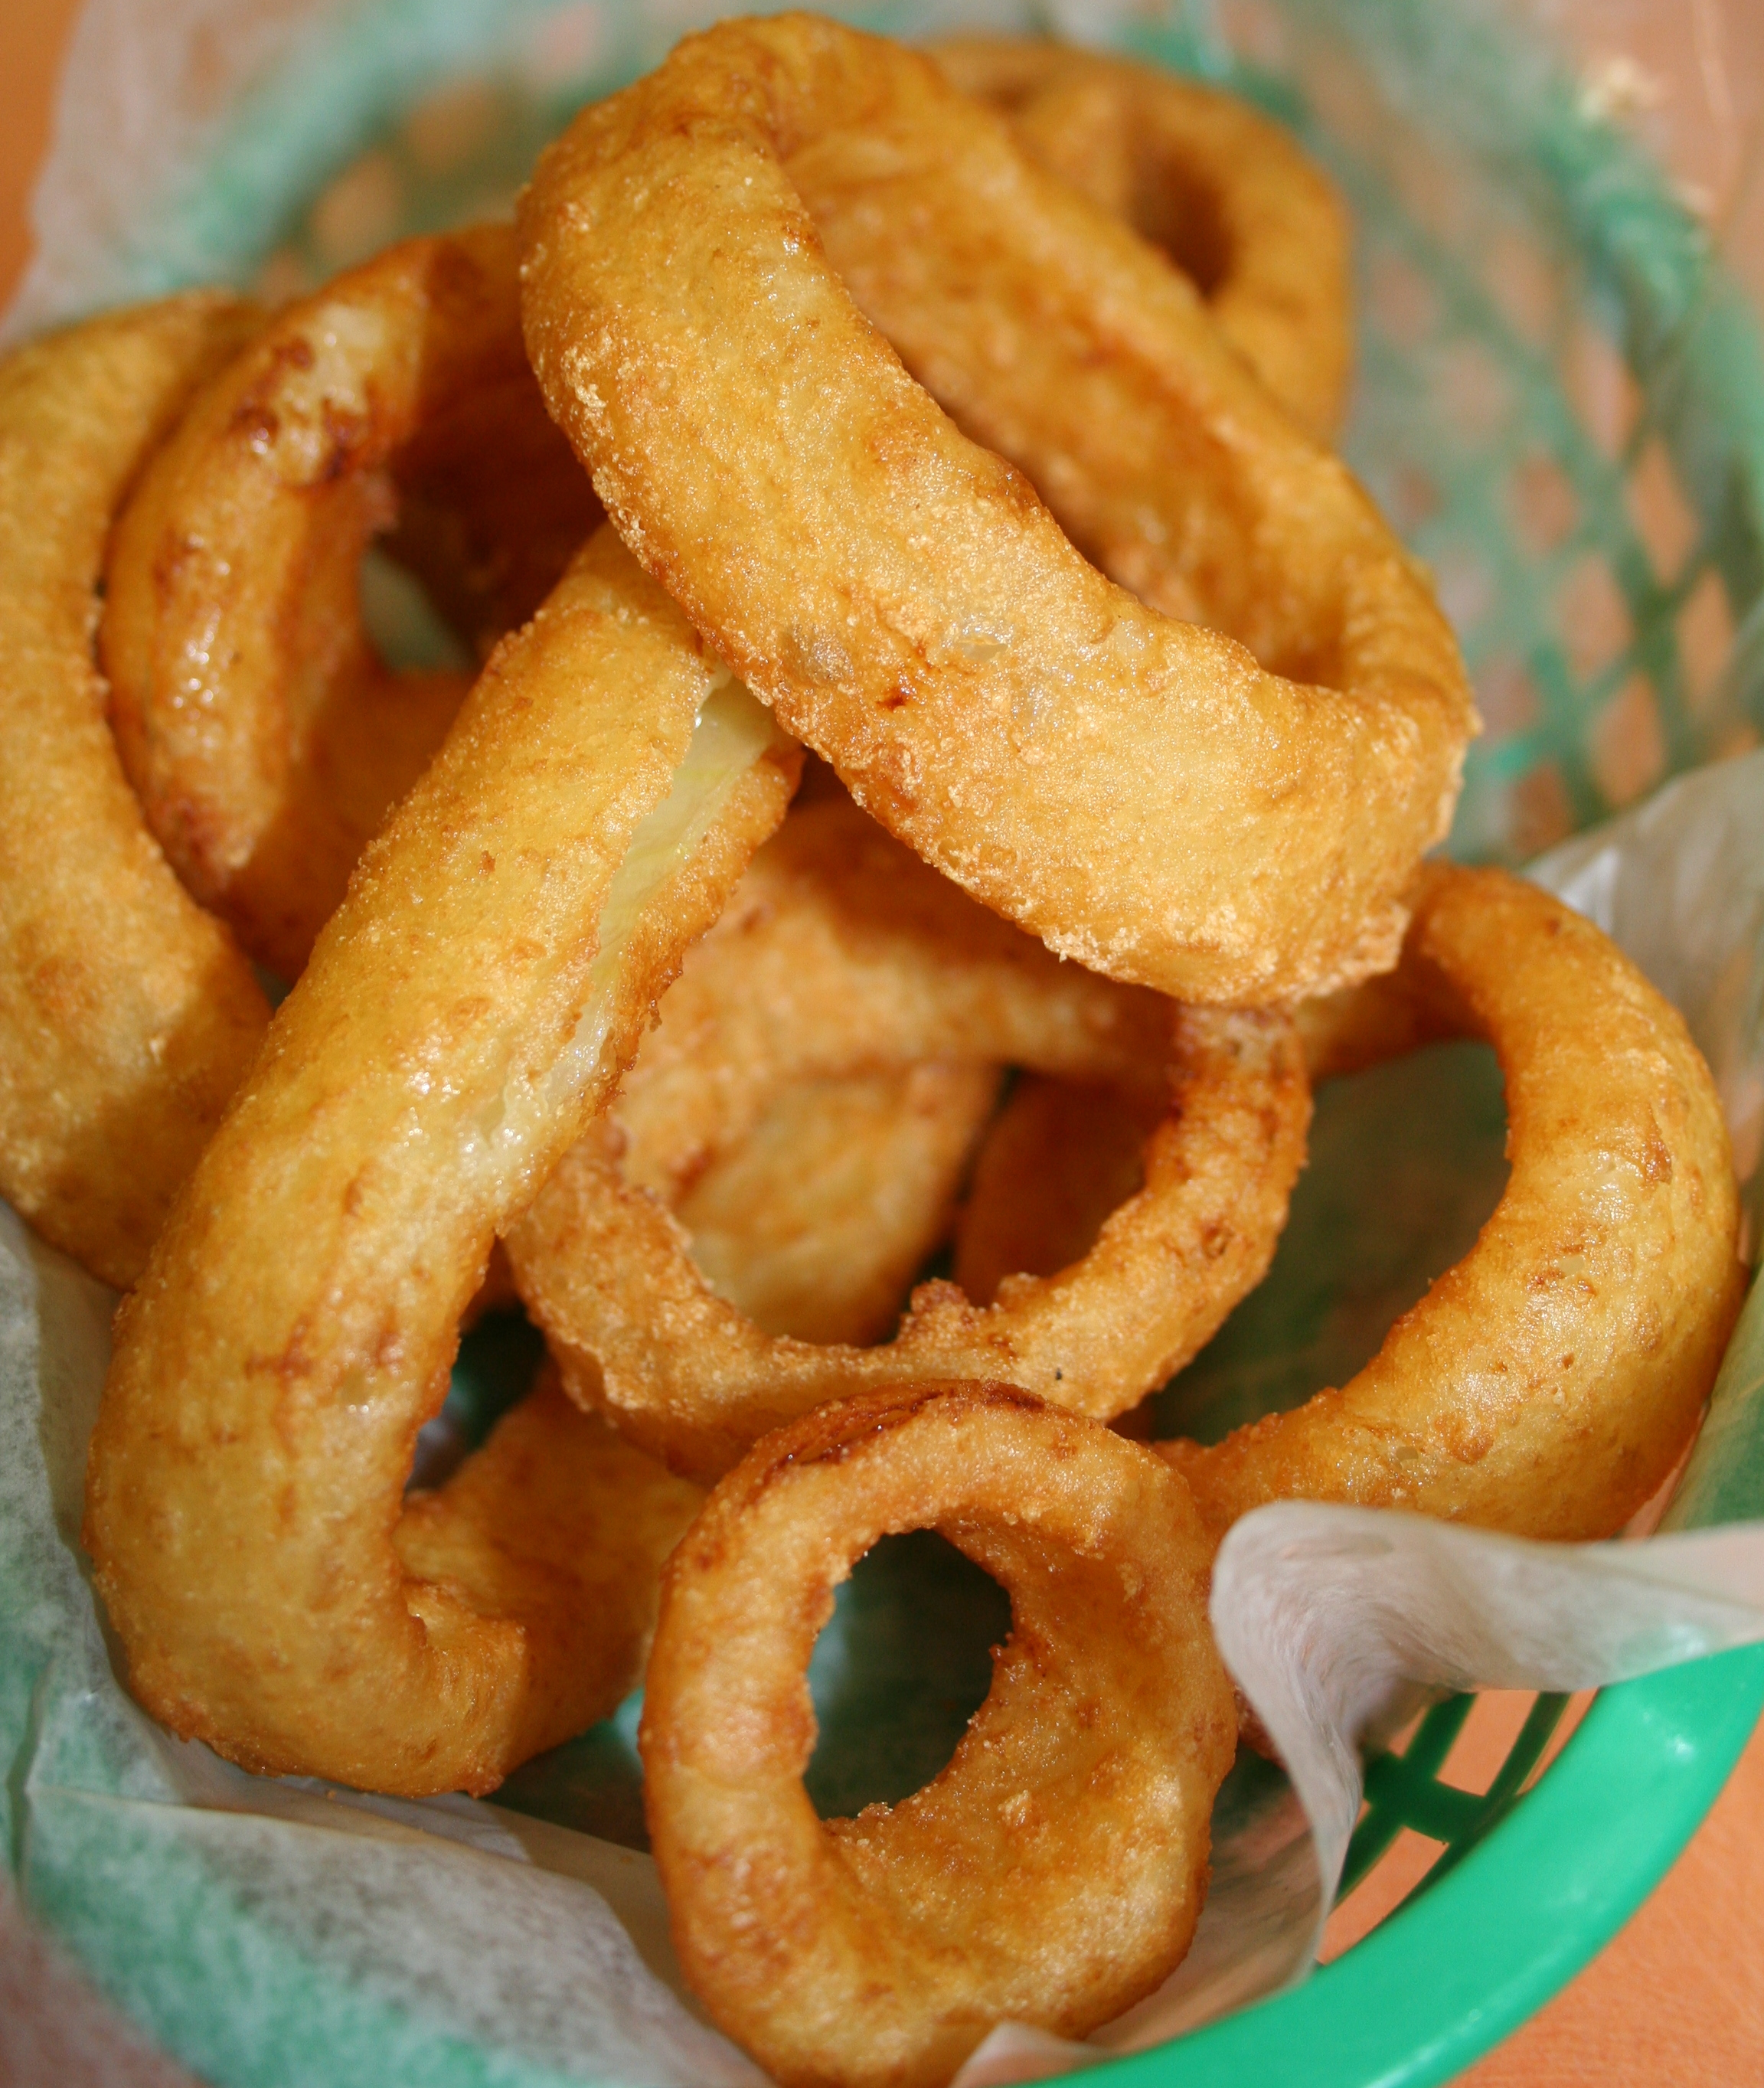 feast product the onion rings